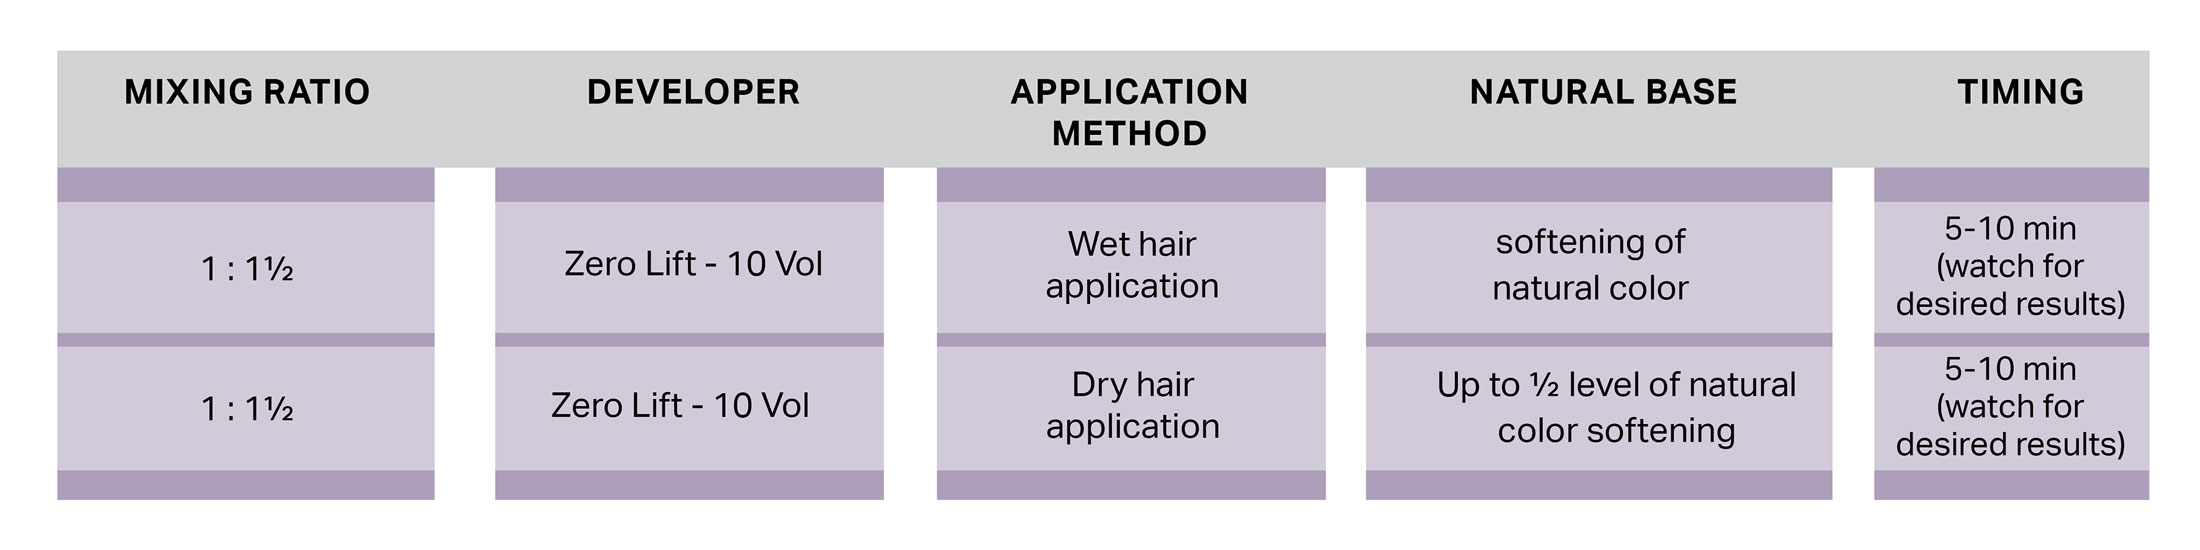 base breaking chart for chromasilk hi lift. First row: Mixing ratio 1:1.5, developer zero lift – 10 vol, application method wed hair application, natural base: softening of natural color, timing: 5-10 min (watch for desired results). Second row: mixing ratio 1:1.5, developer: zero lift – 10 vol, application method: dry hair application, natural base: up to half level of natural color softening, timing: 5-10 min (watch for desired results)